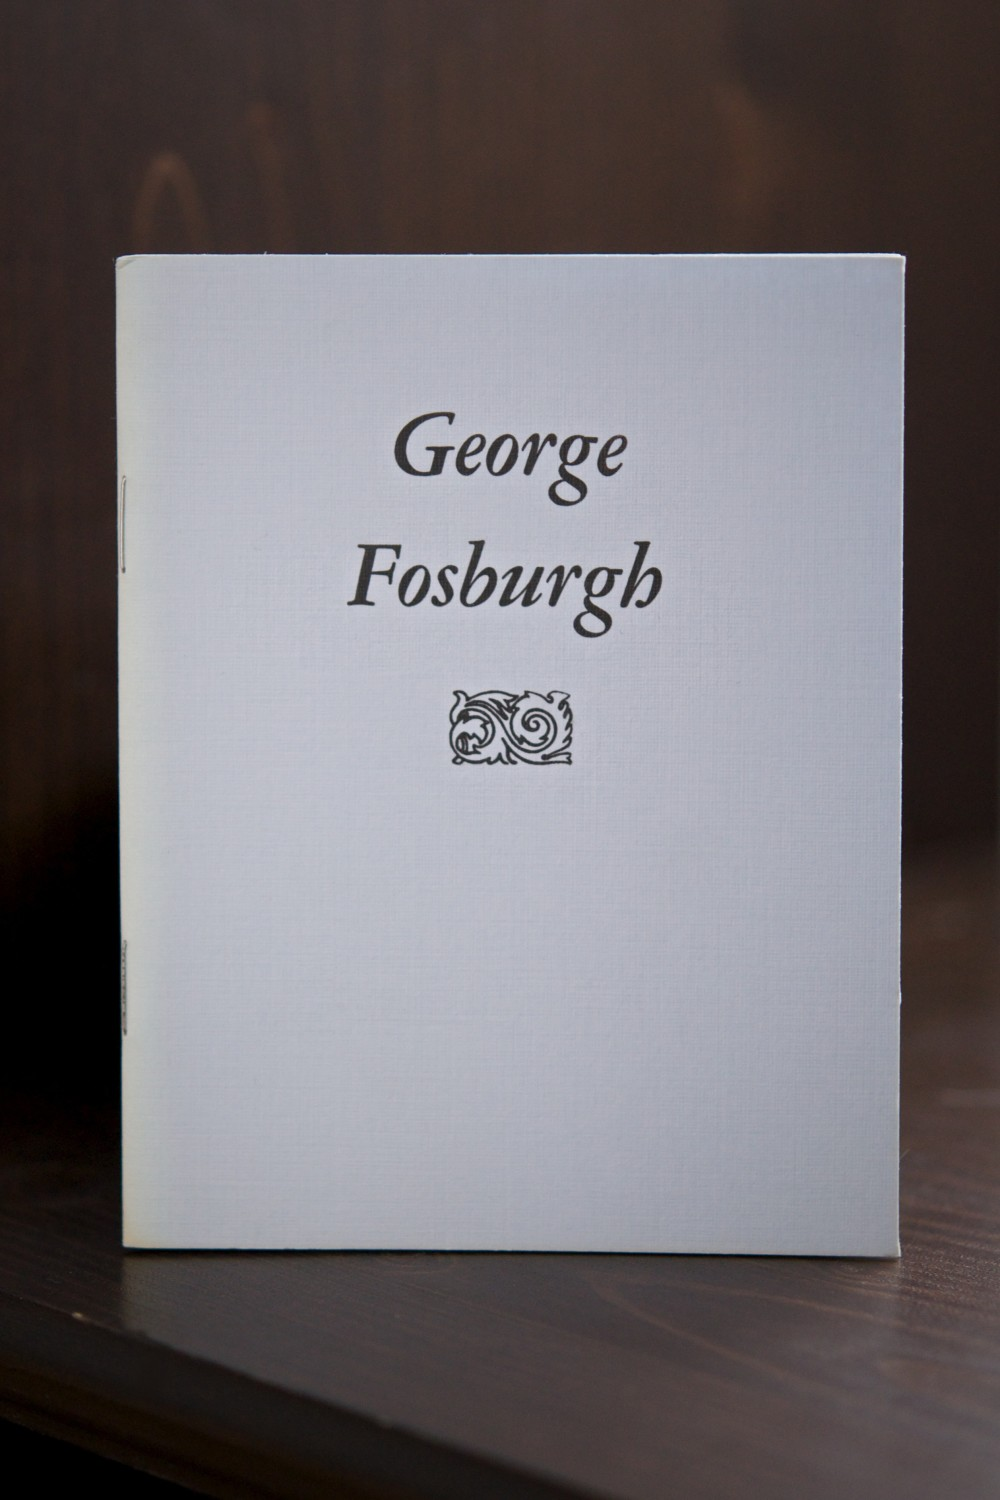 George Fosburgh pamphlet